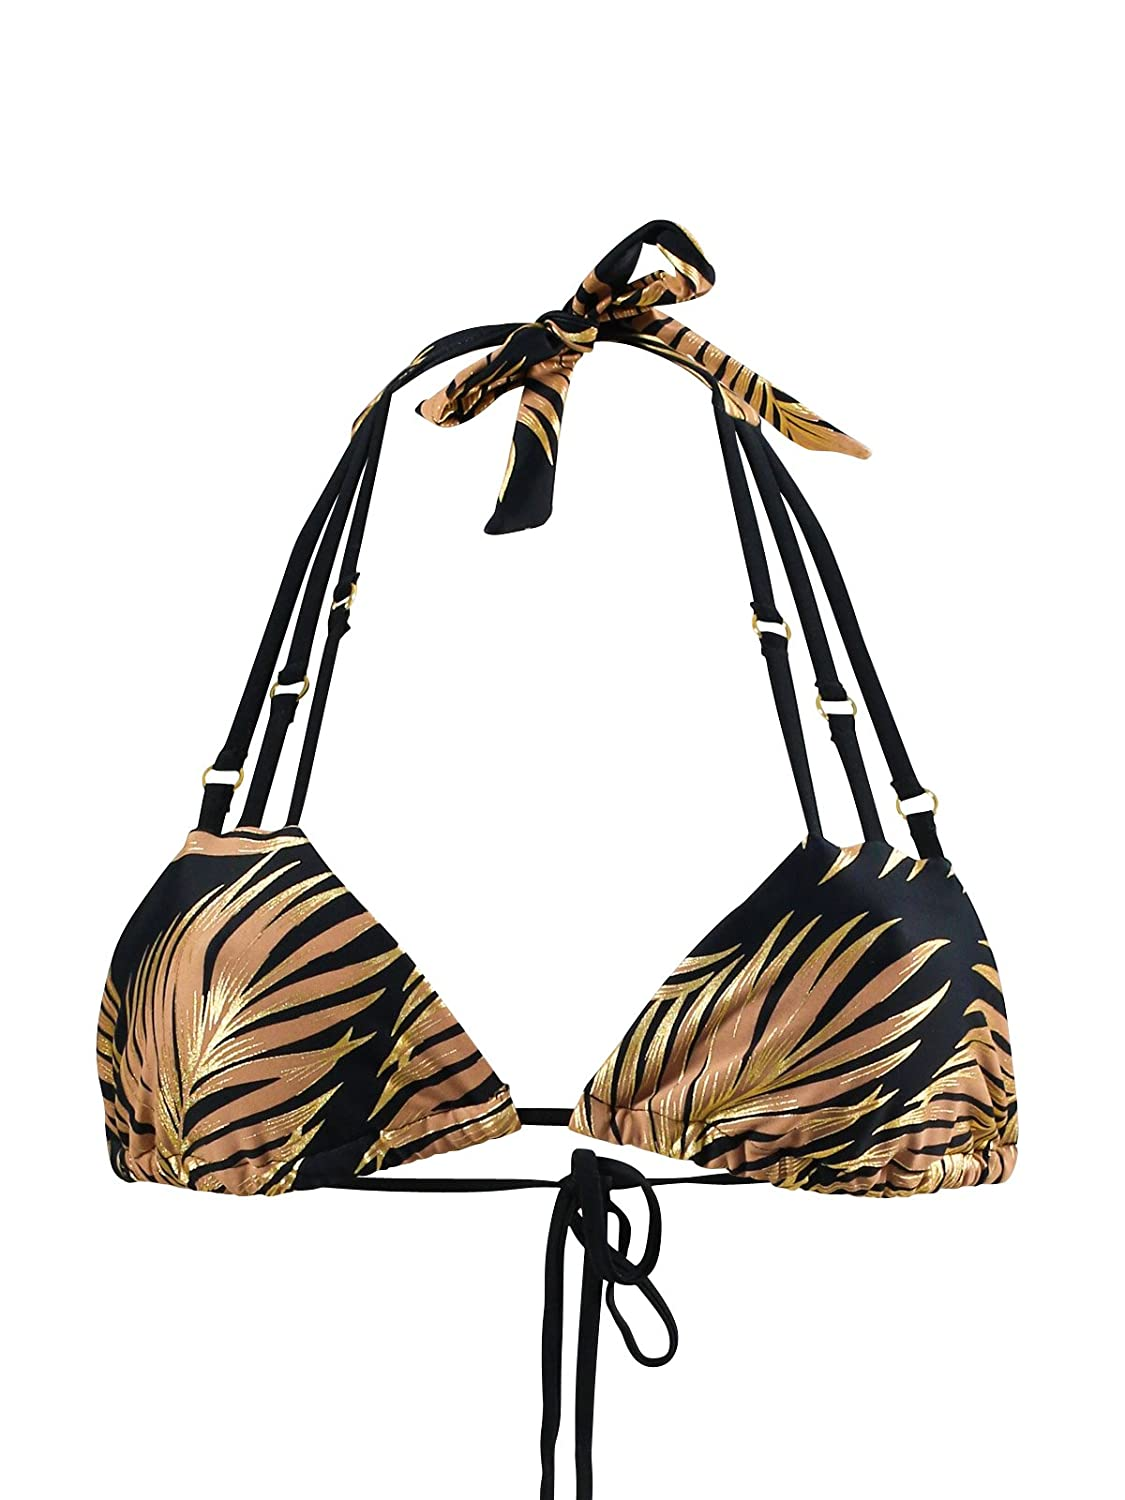 Bikini-Top Triangel Beach Bunny Bunny Basic Gold Foil Palm Bunt